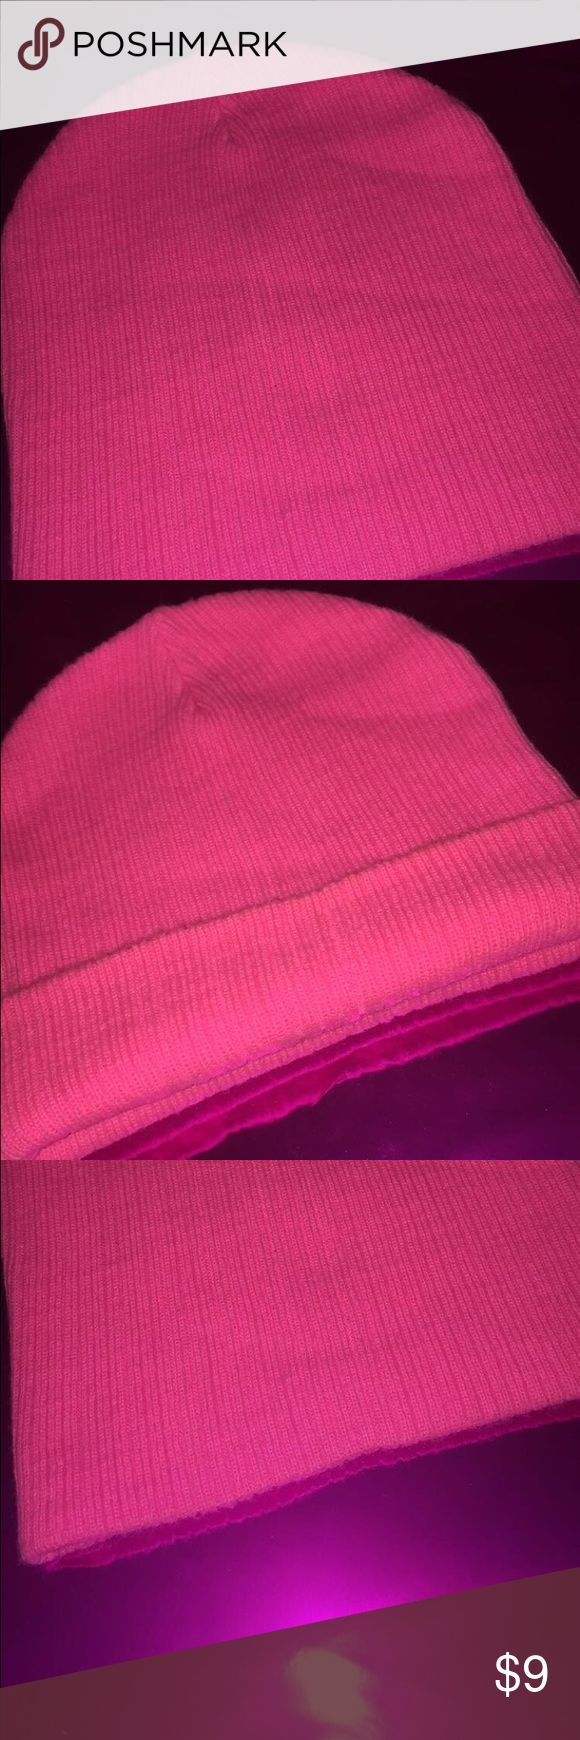 PINK BEANIE HAT!💕 Fashion statement! Cute for: YOUNG GIRLS, TEENS, or Any lady that loves pink! NO TRADES🚫 NEVER TORN🚫 fun, cute fall/winter beanie F21 Accessories Hats